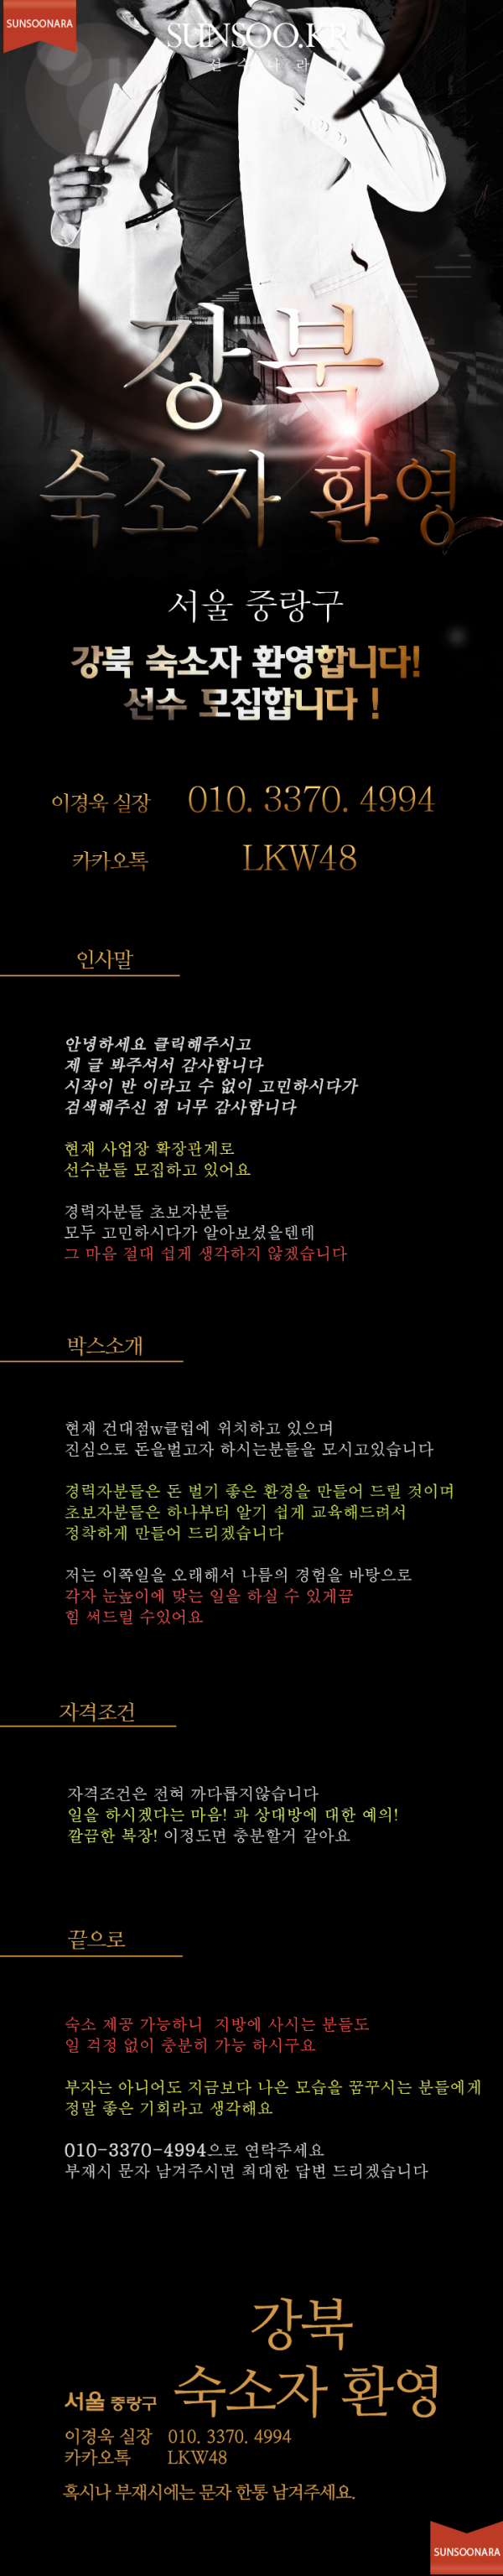 new건대w.png